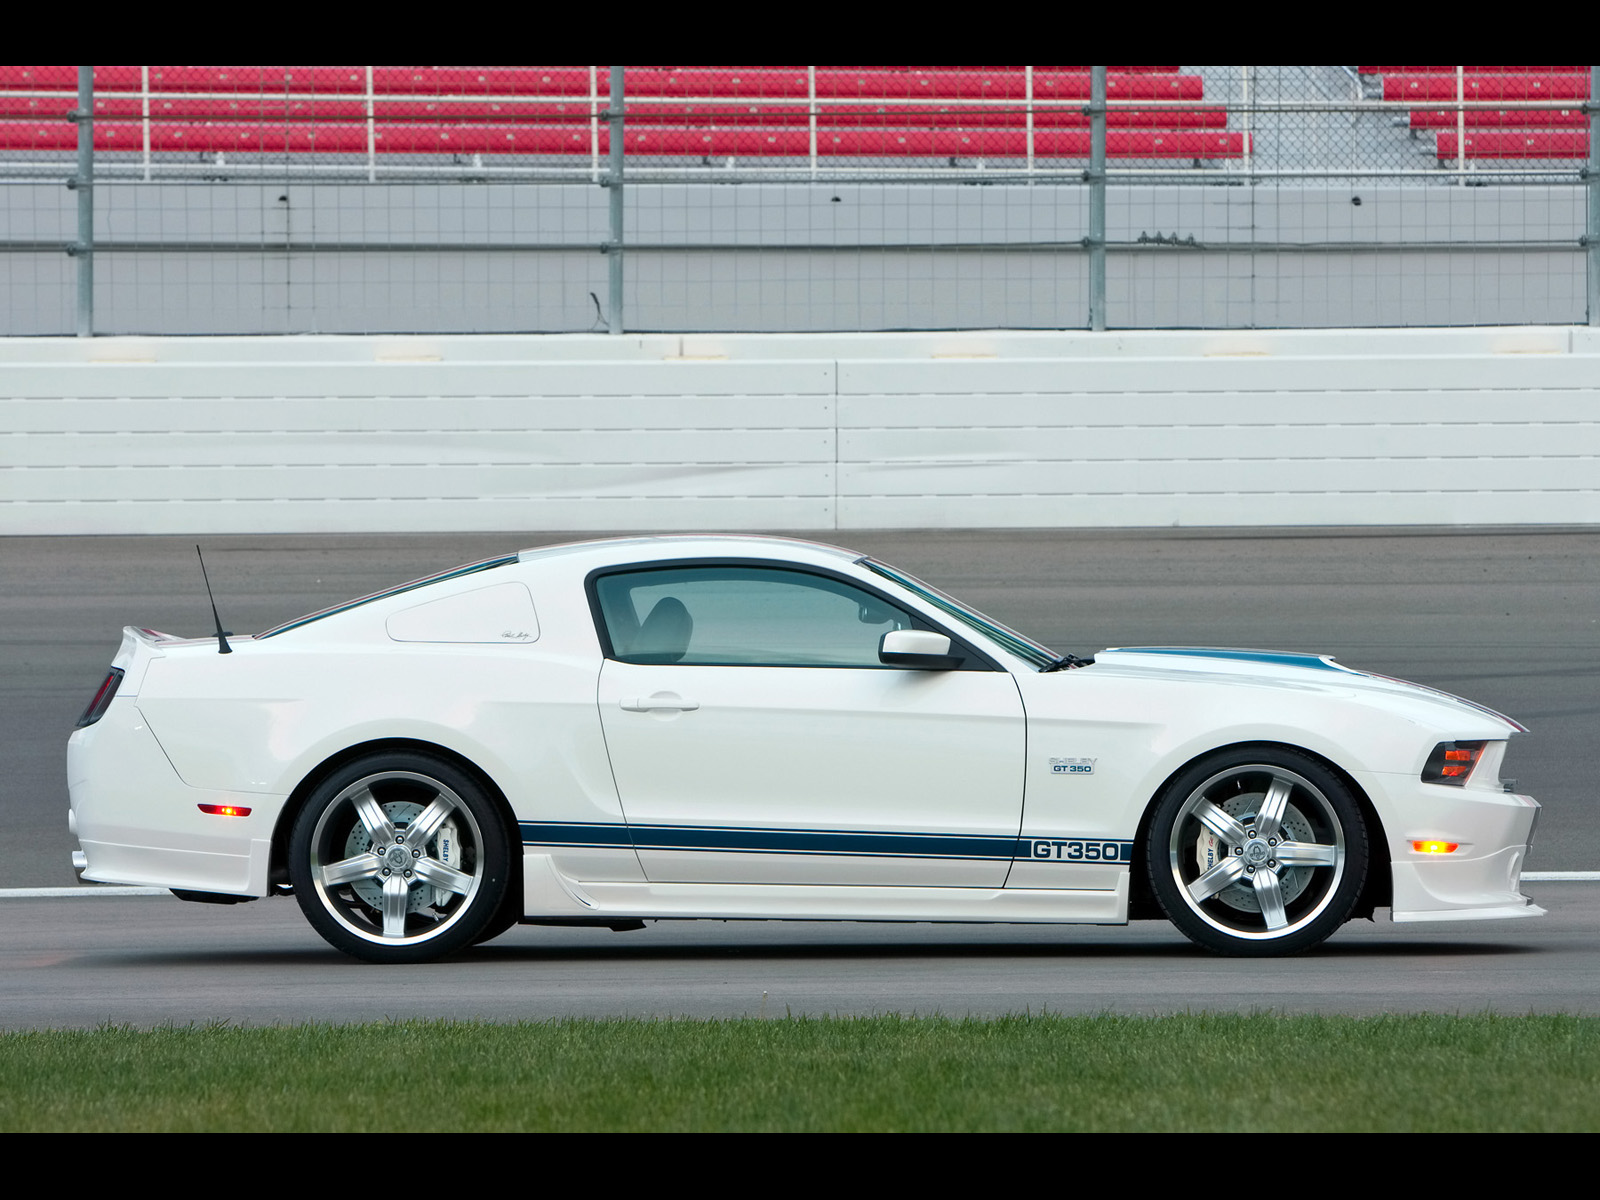 2011 Shelby Mustang GT 350